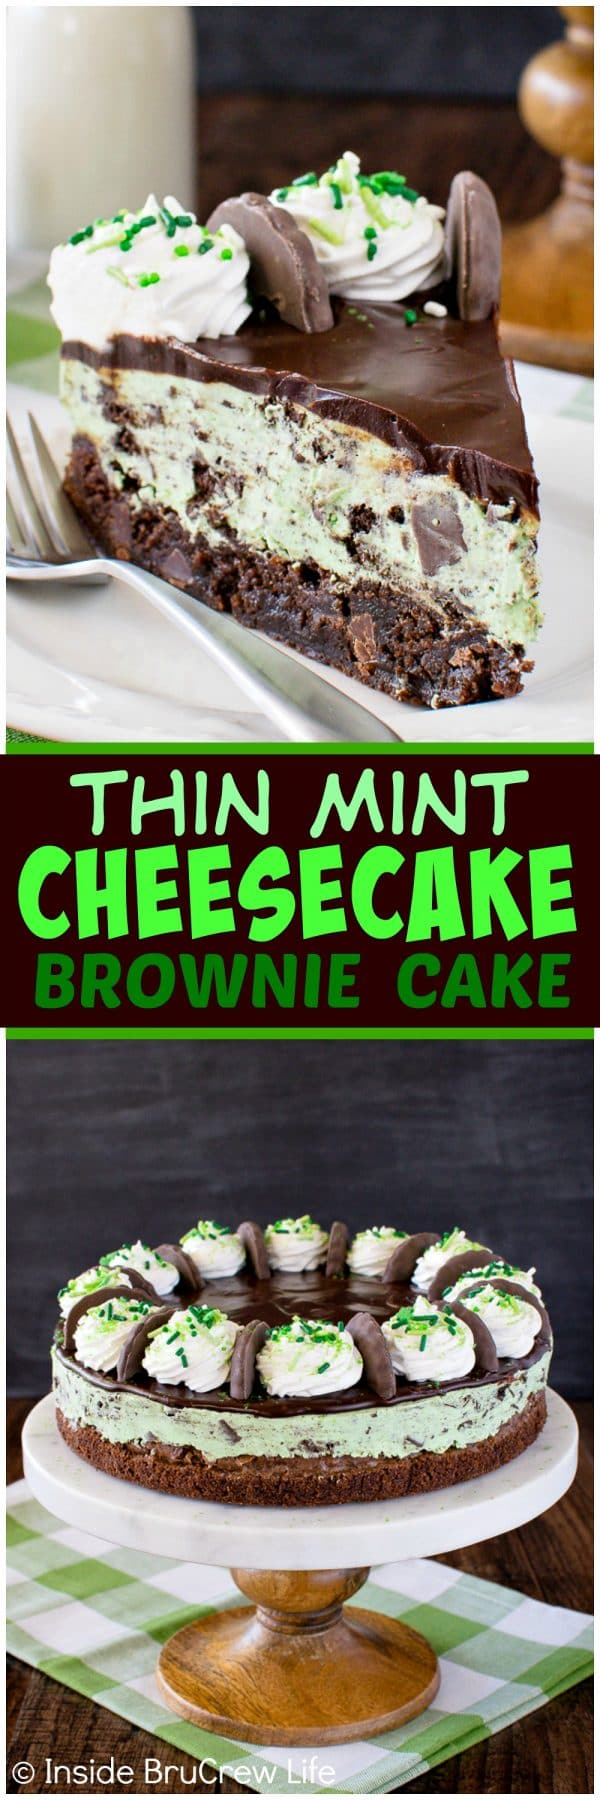 Thin Mint Cheesecake Brownie Cake - layers of chocolate, no bake mint cookie cheesecake, and chewy brownies make this a fun cake to make. Great dessert recipe for any party! #brownie #cake #thinmint #nobakecheesecake #chocolate